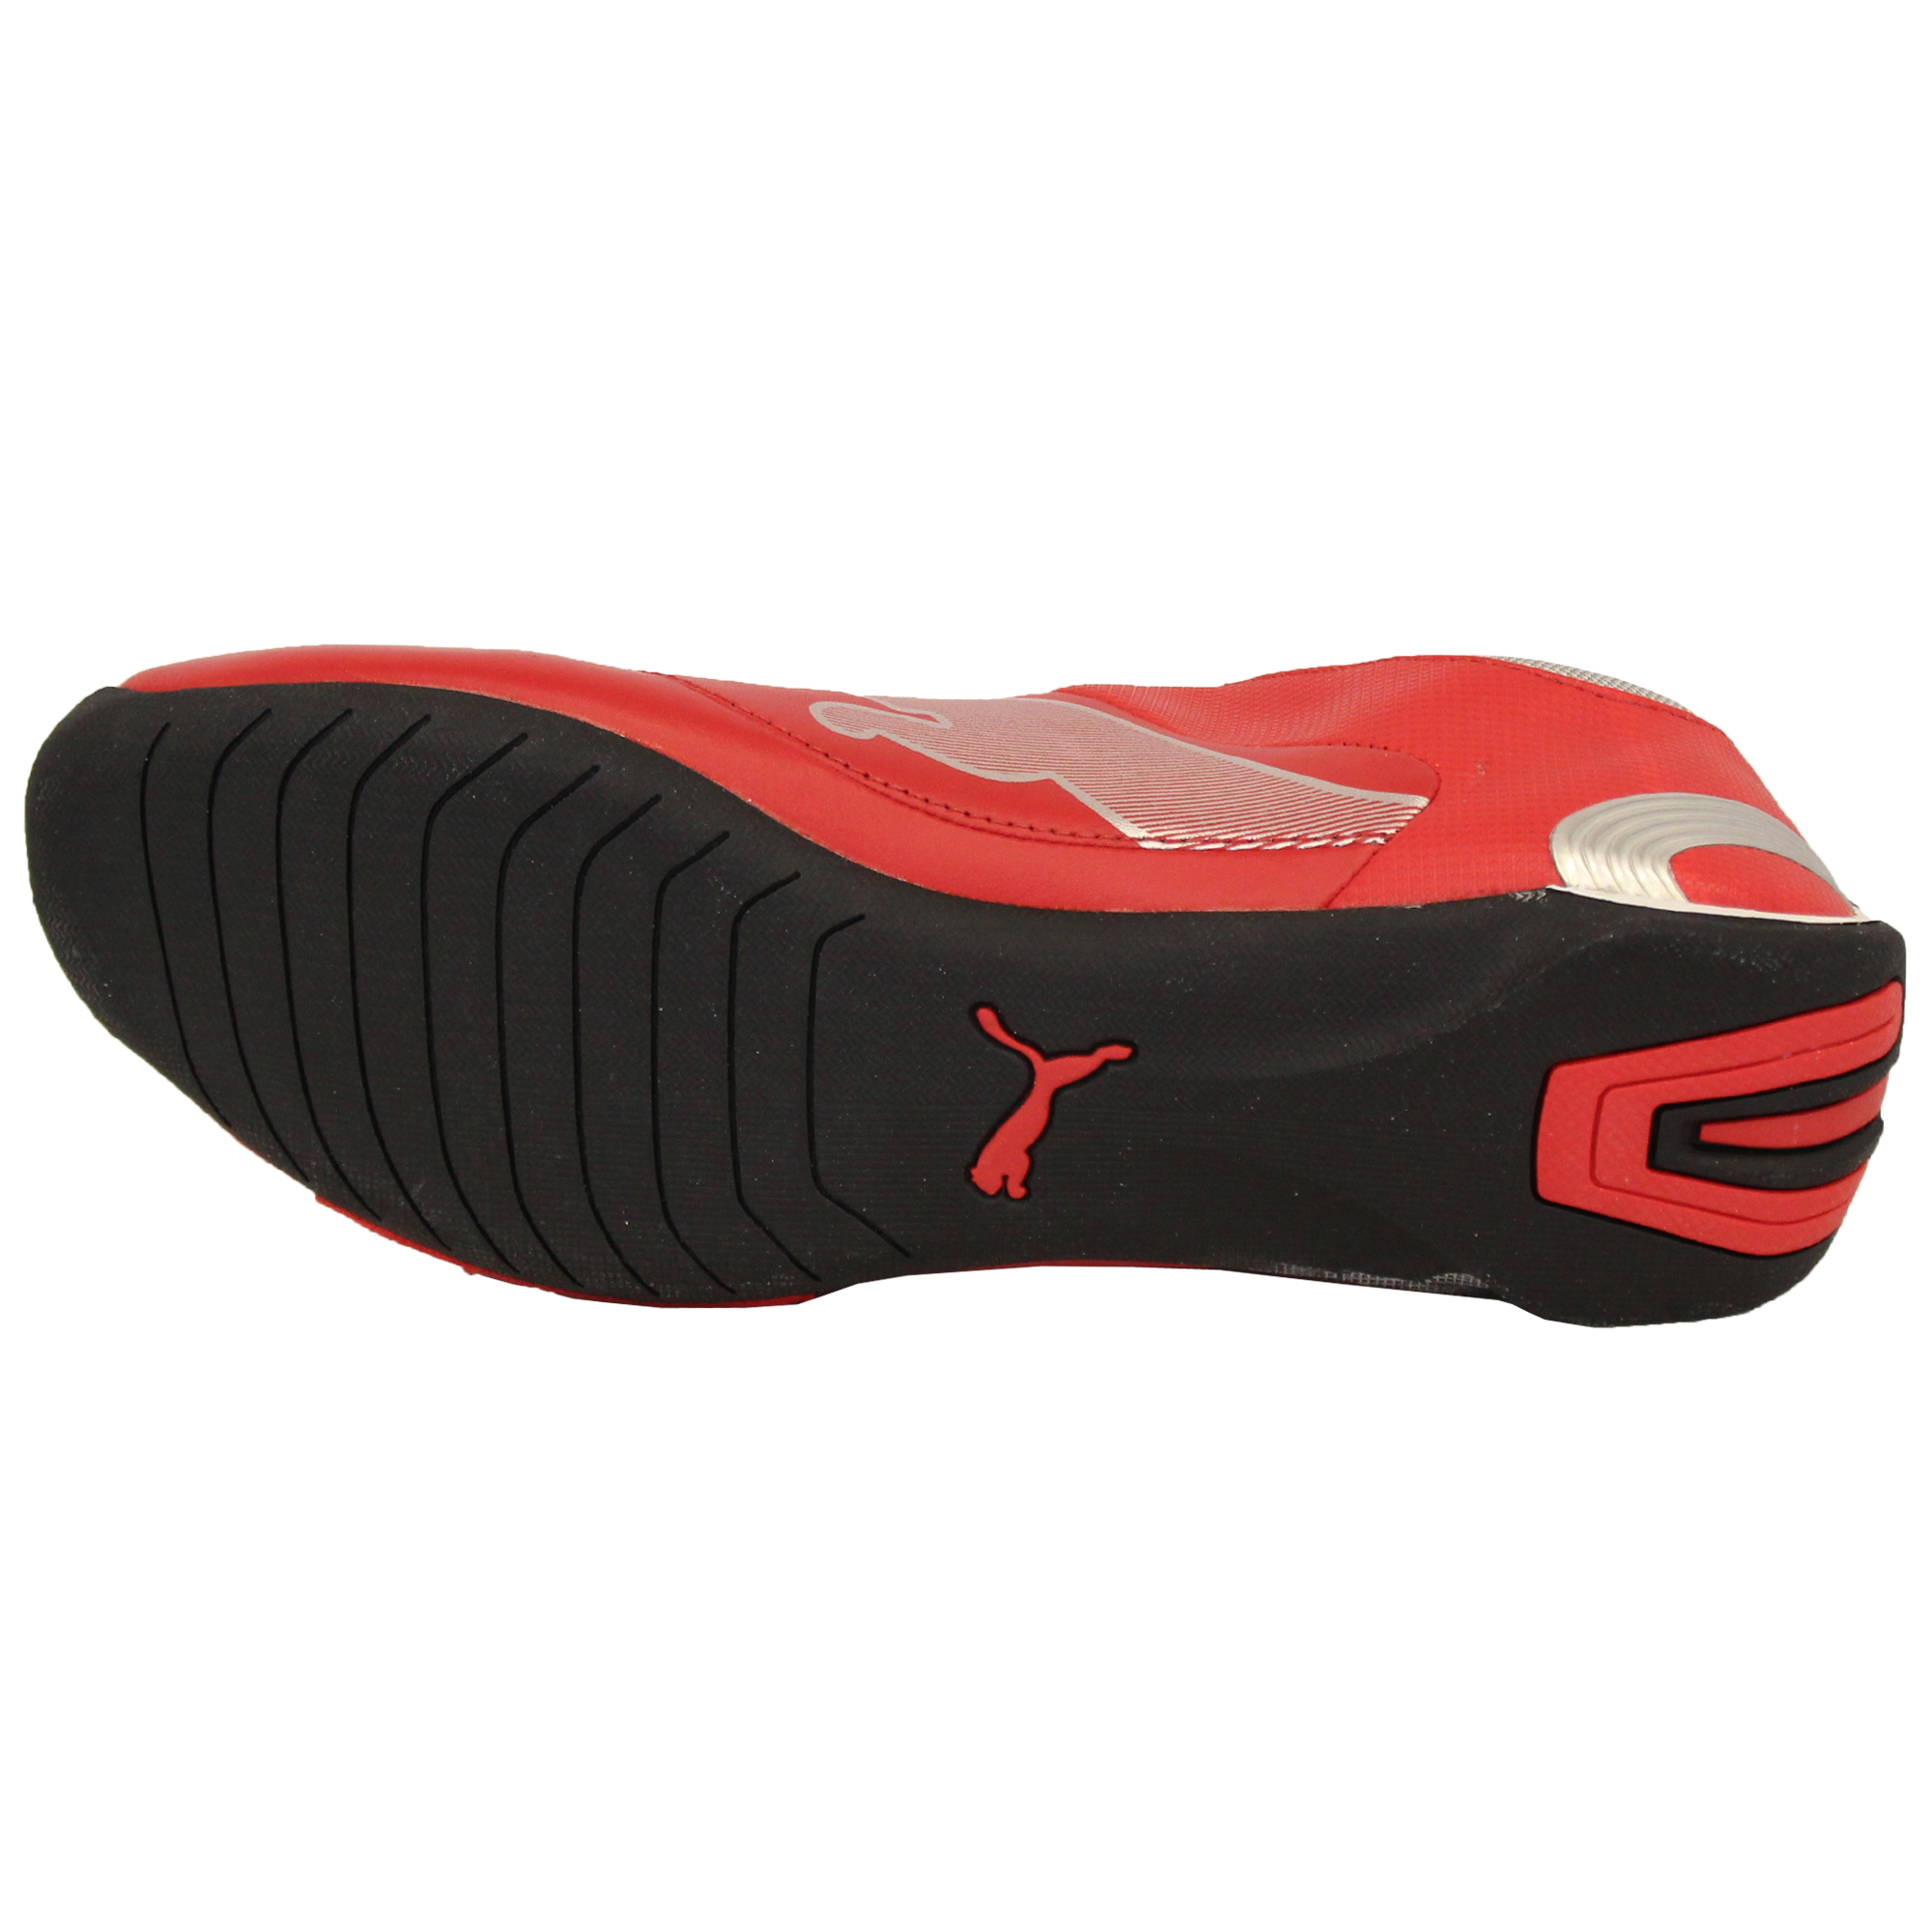 Boys-PUMA-Ferrari-Leather-Trainers-Kids-Evo-Power-Speed-Cat-Sports-Shoes-Casual thumbnail 4